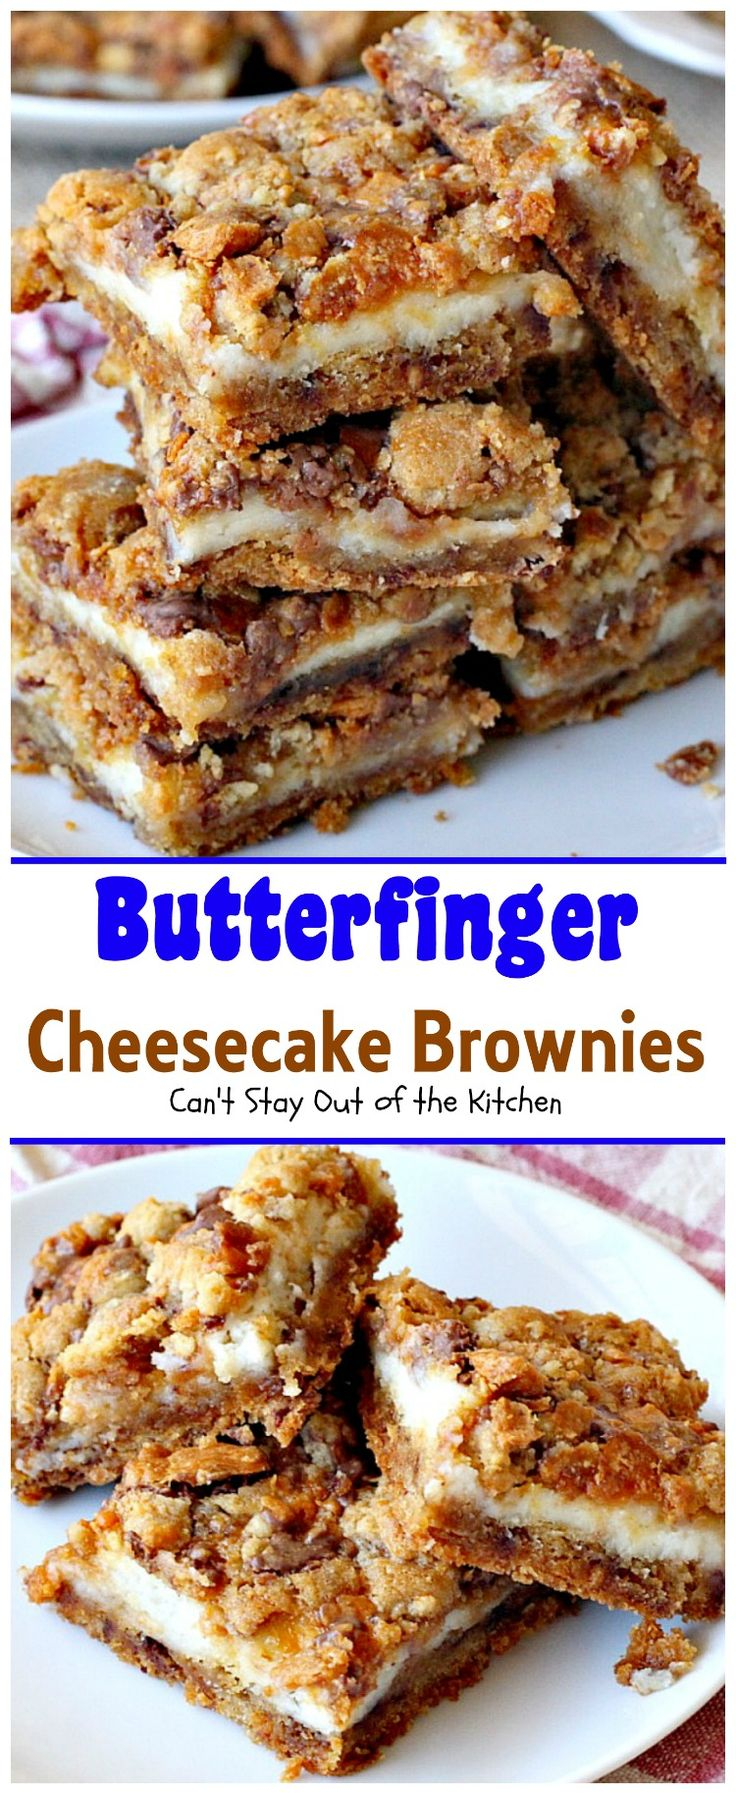 Butterfinger Cheesecake Brownies are rich, decadent, and oh so satisfying! Who doesn't love Butterfingers? Nowadays, Butterfingers also make baking bits that you can bake with, so that's what I added